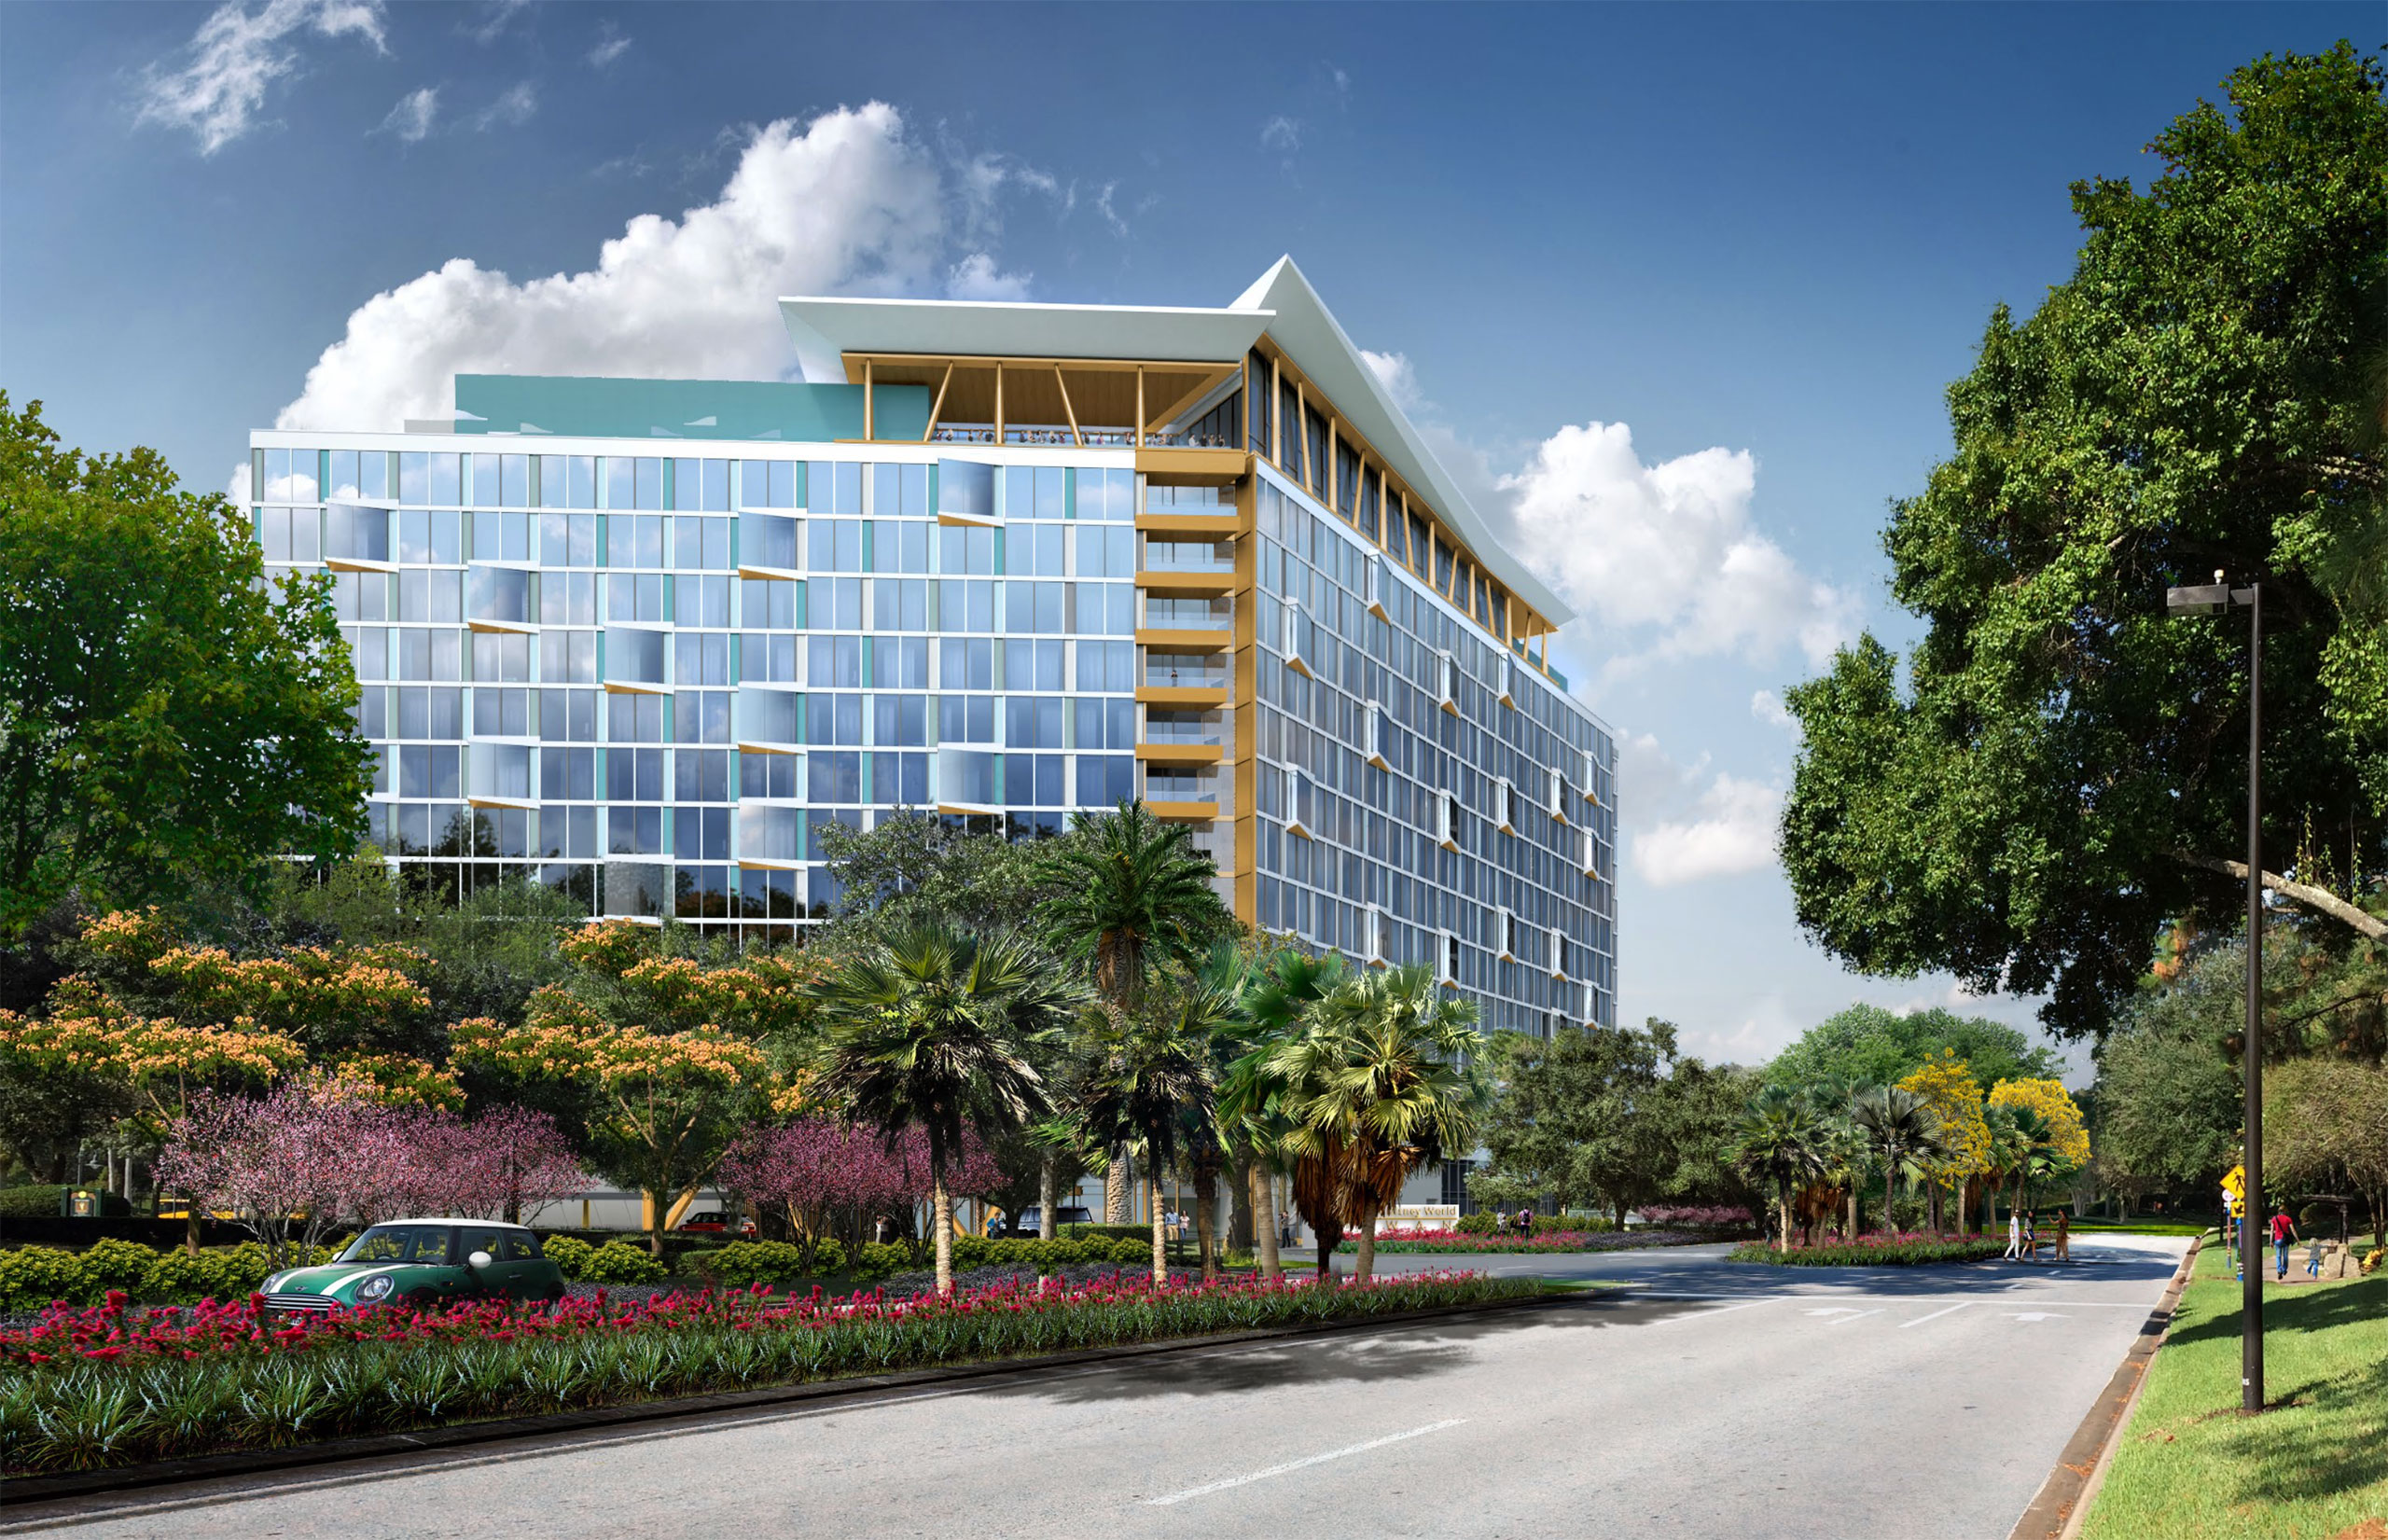 Concept art of the new Walt Disney World Swan and Dolphin Resort tower